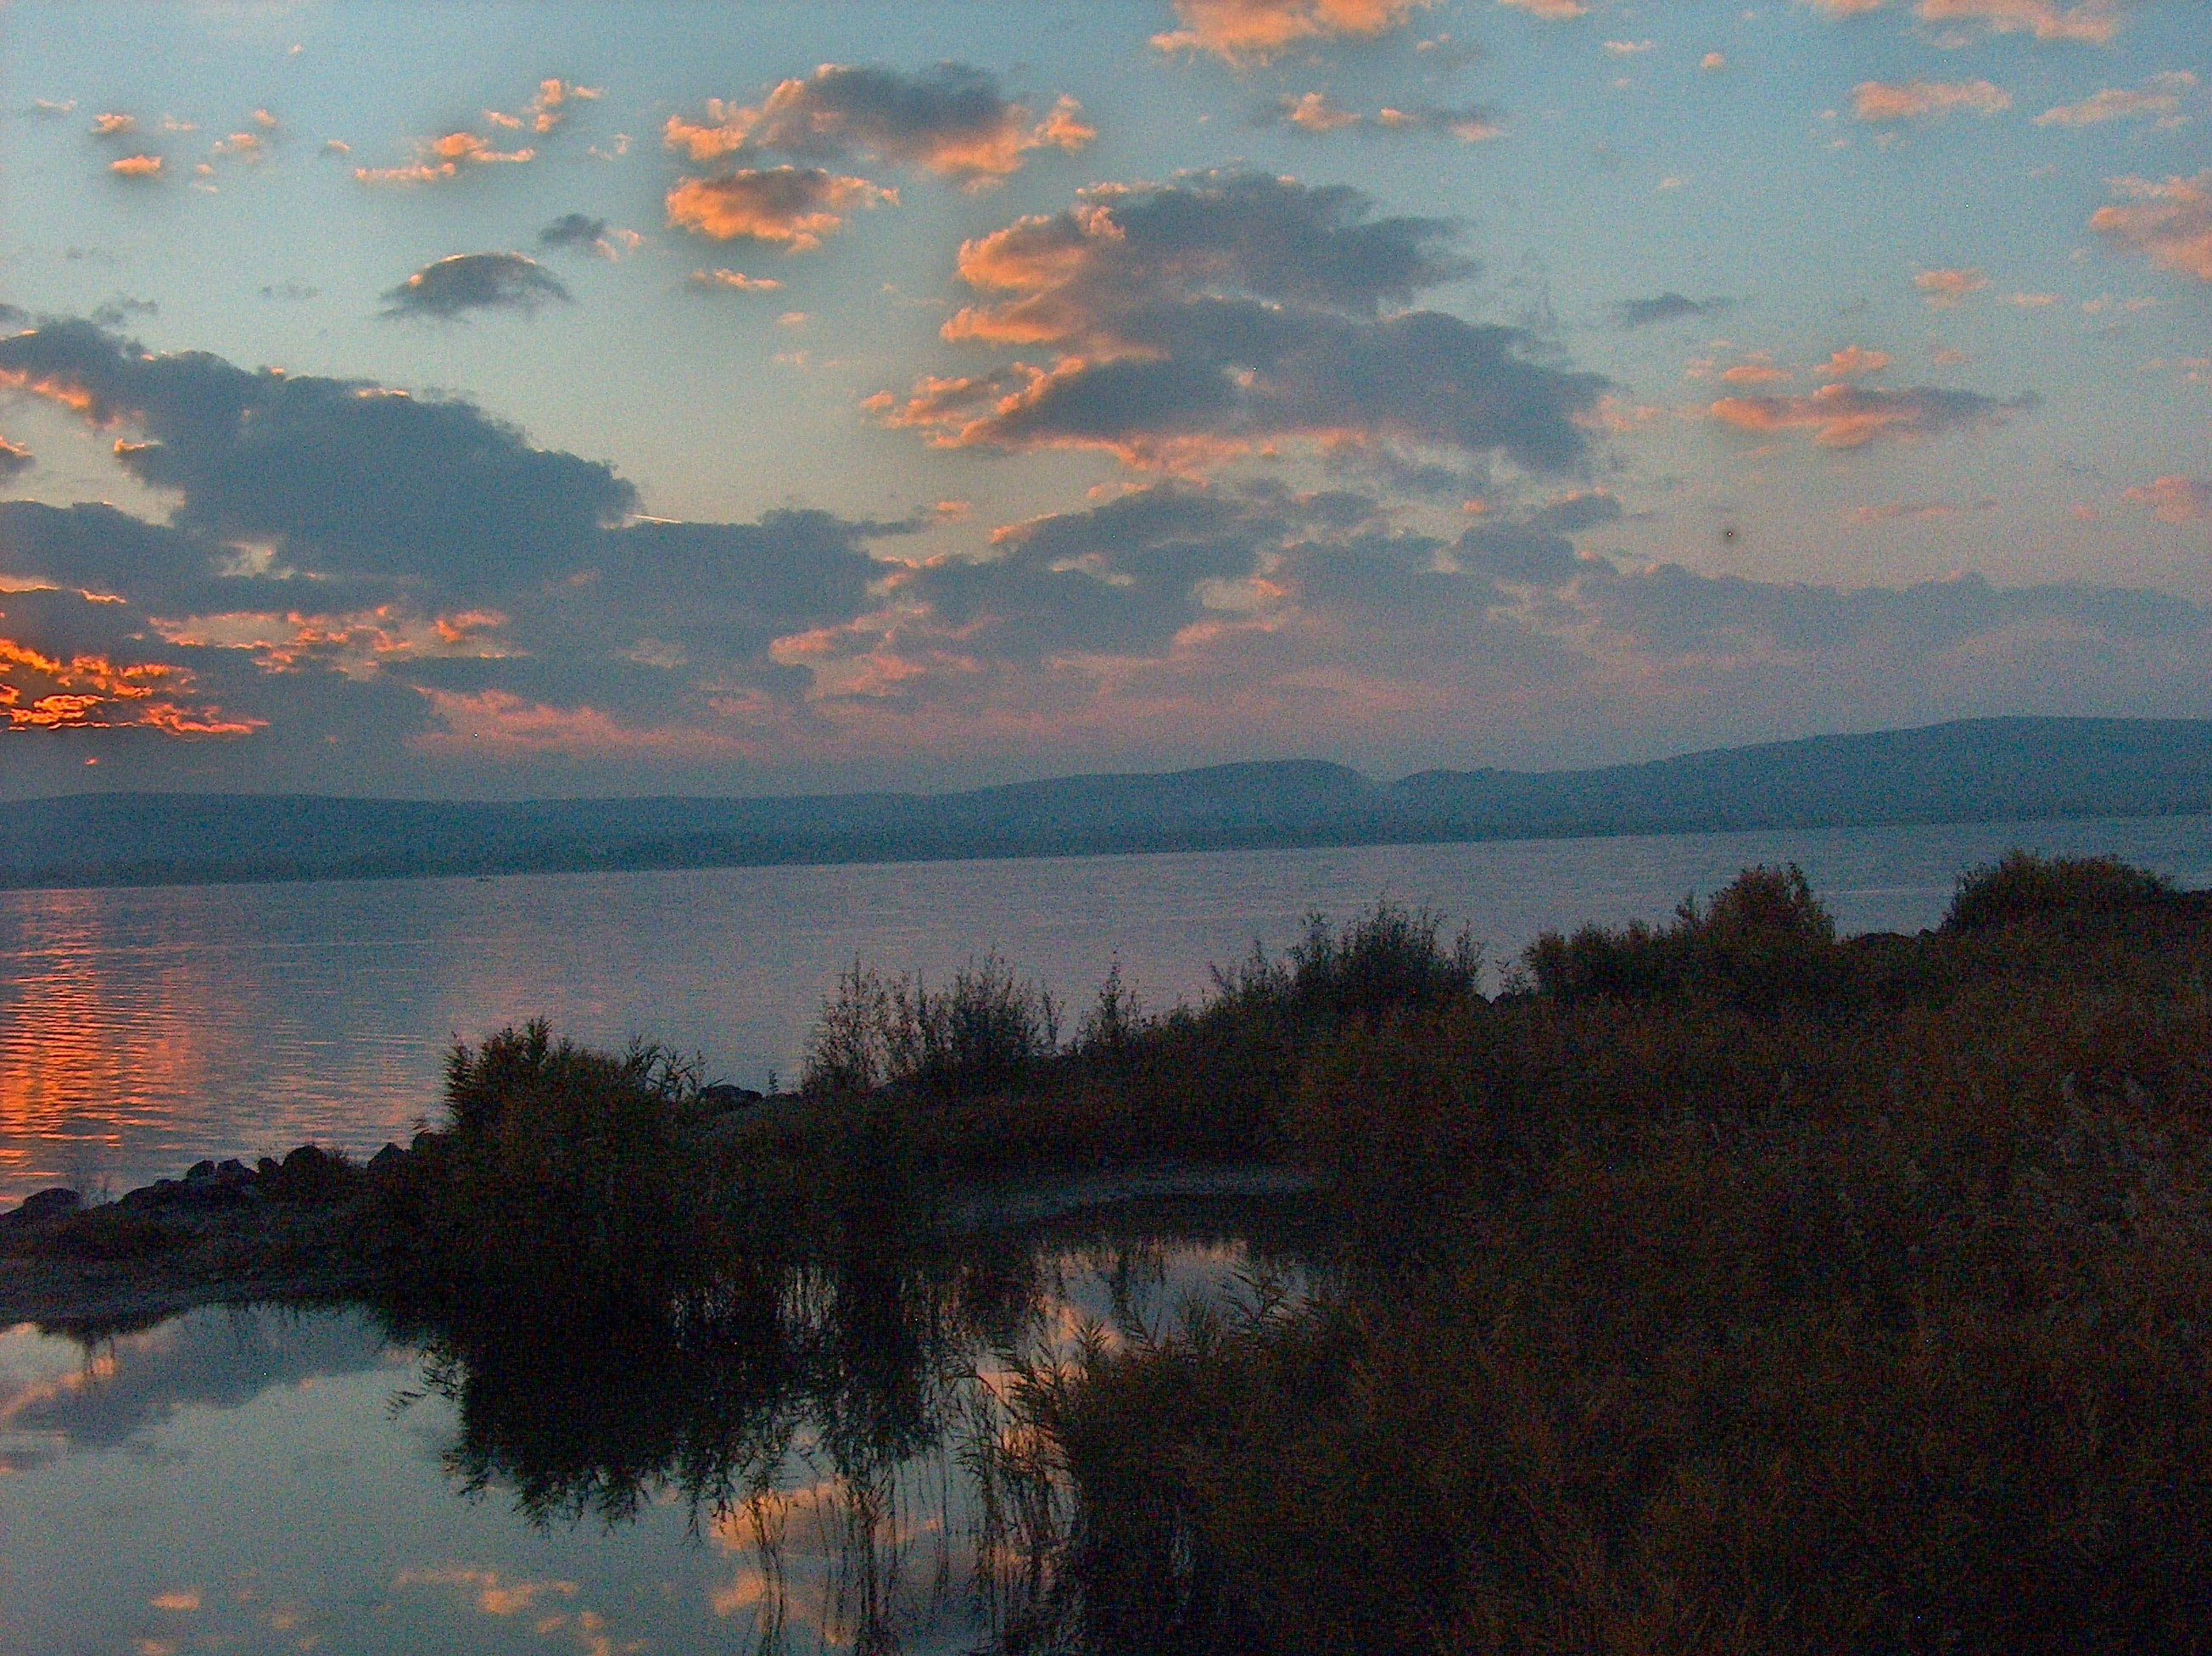 sunset clouds hungary Lake Balaton